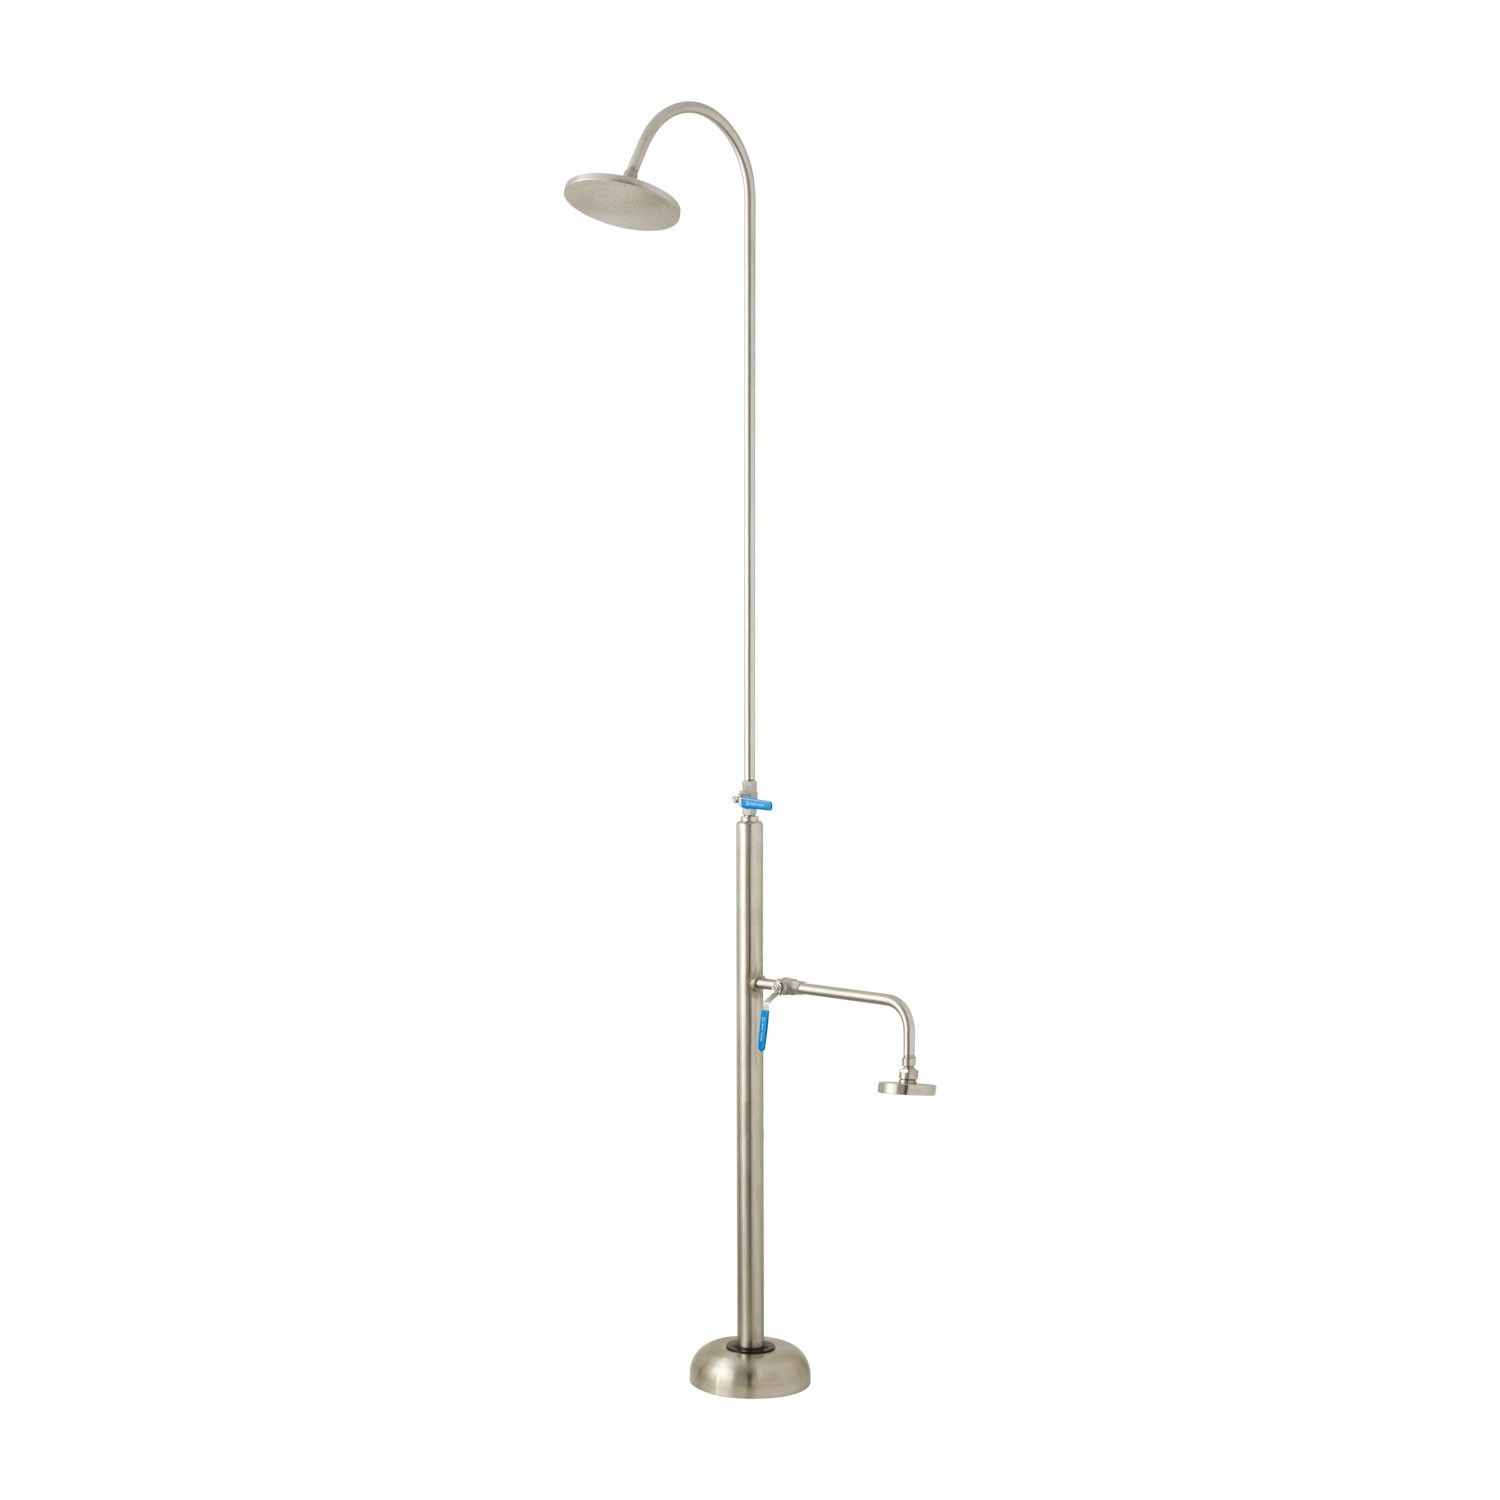 Marlin Stainless Steel Outdoor Shower With Foot Shower Outdoor